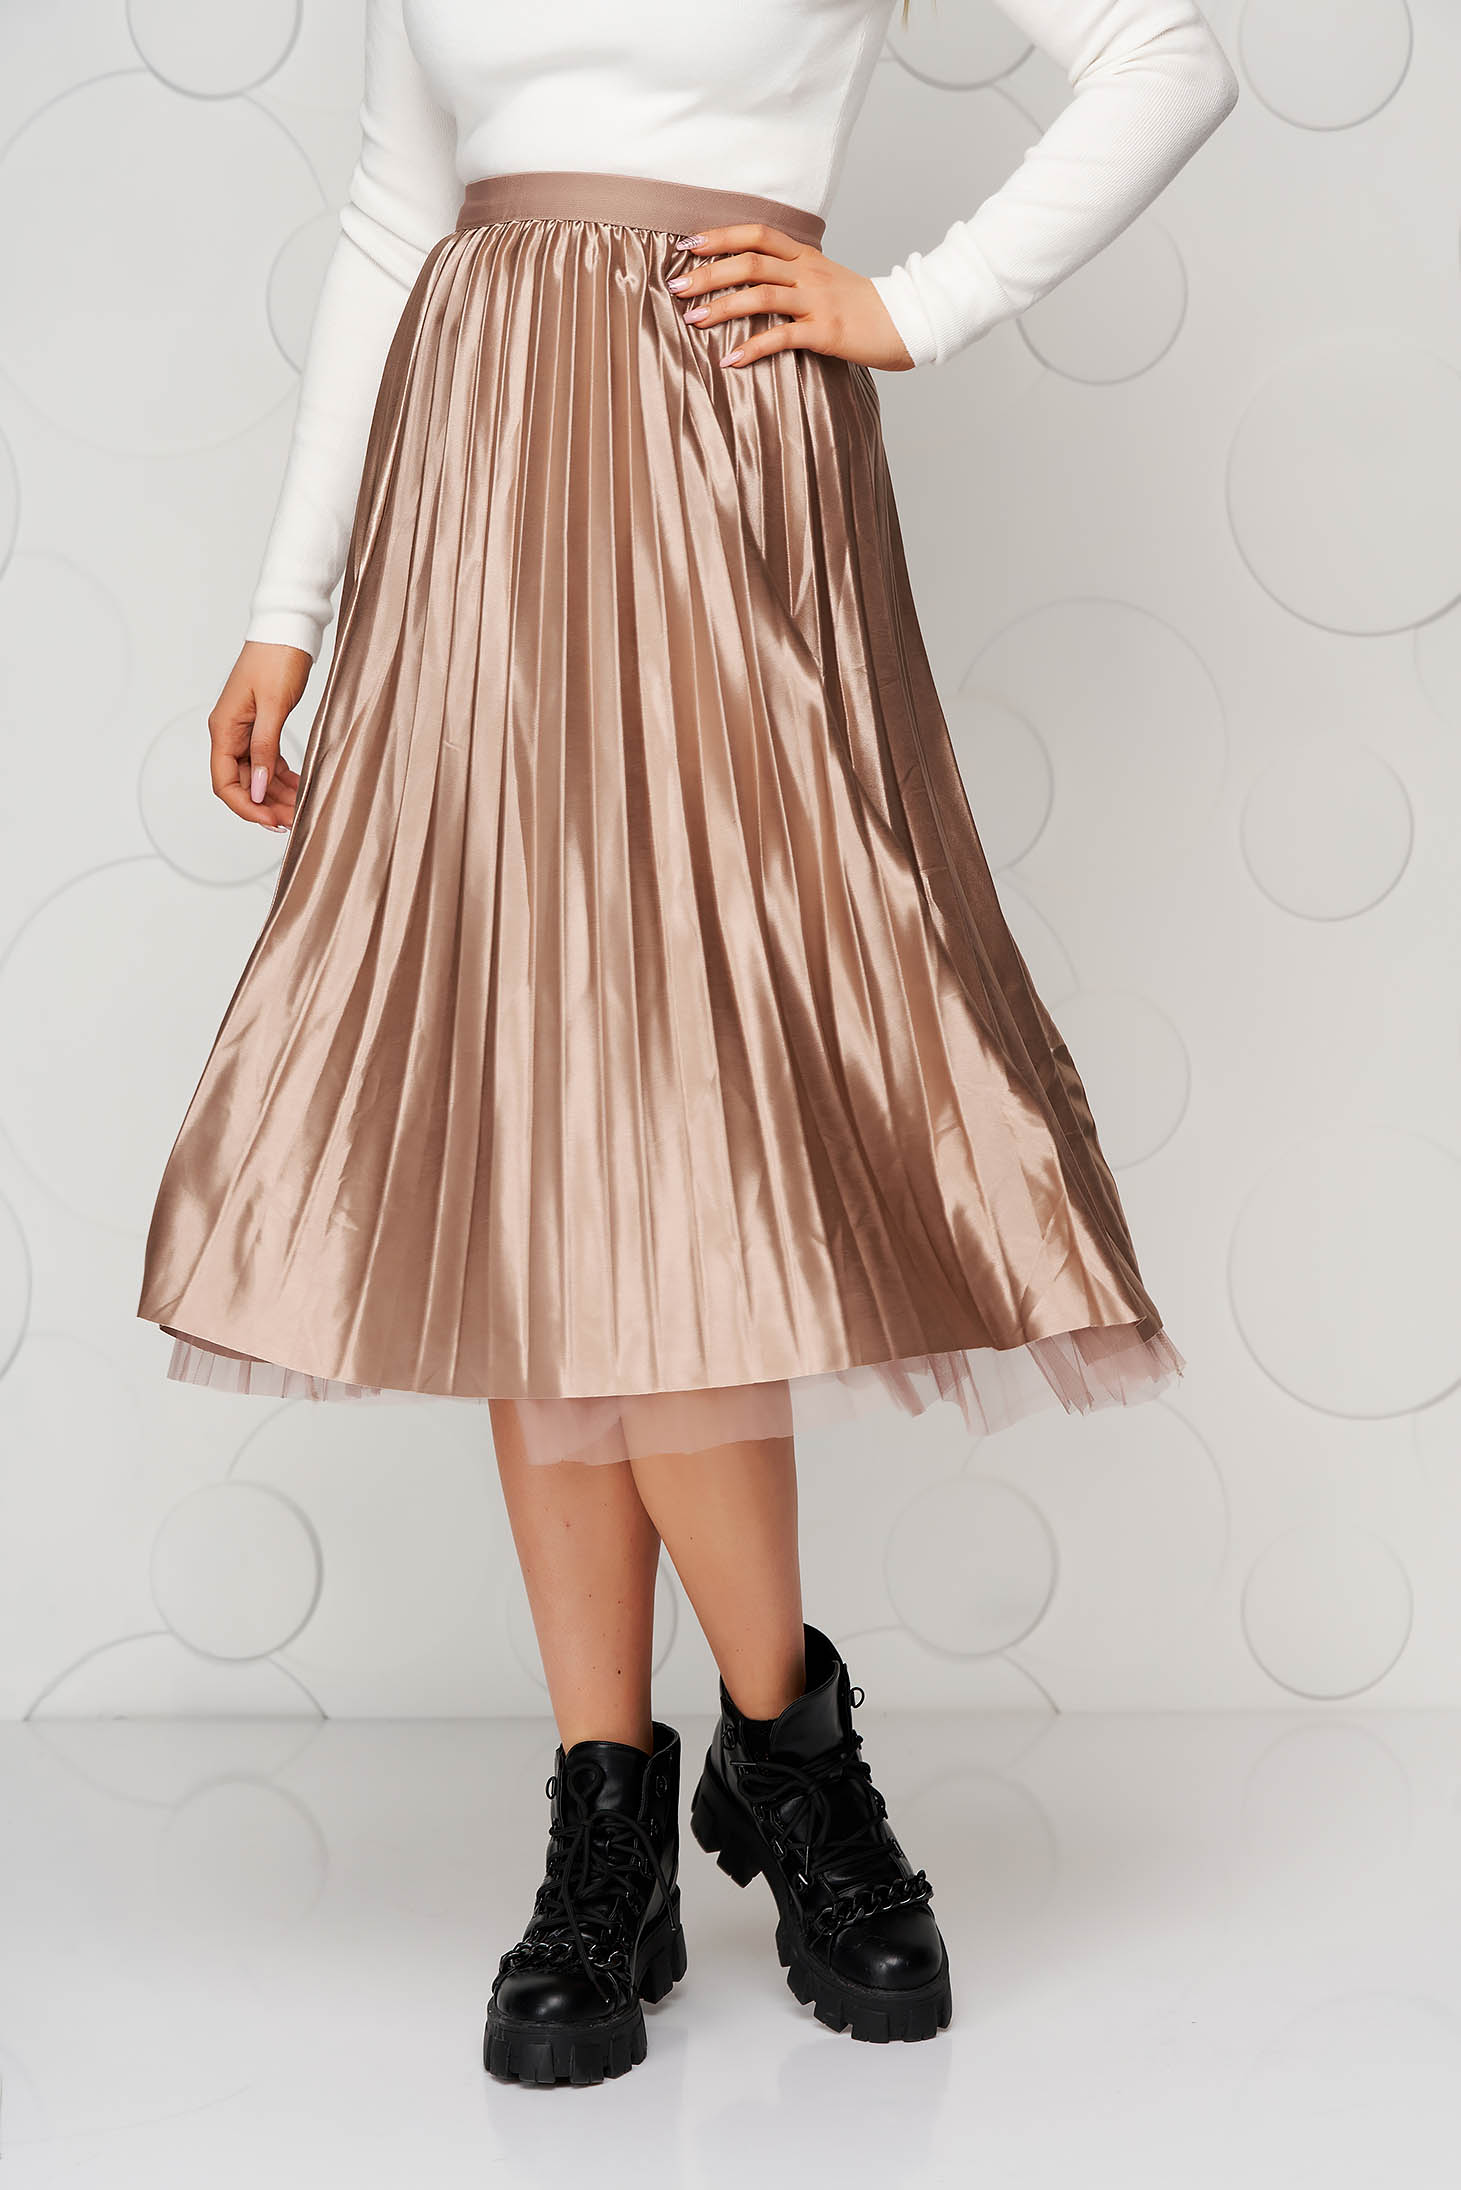 Cappuccino skirt midi from tulle from satin folded up clubbing double-faced